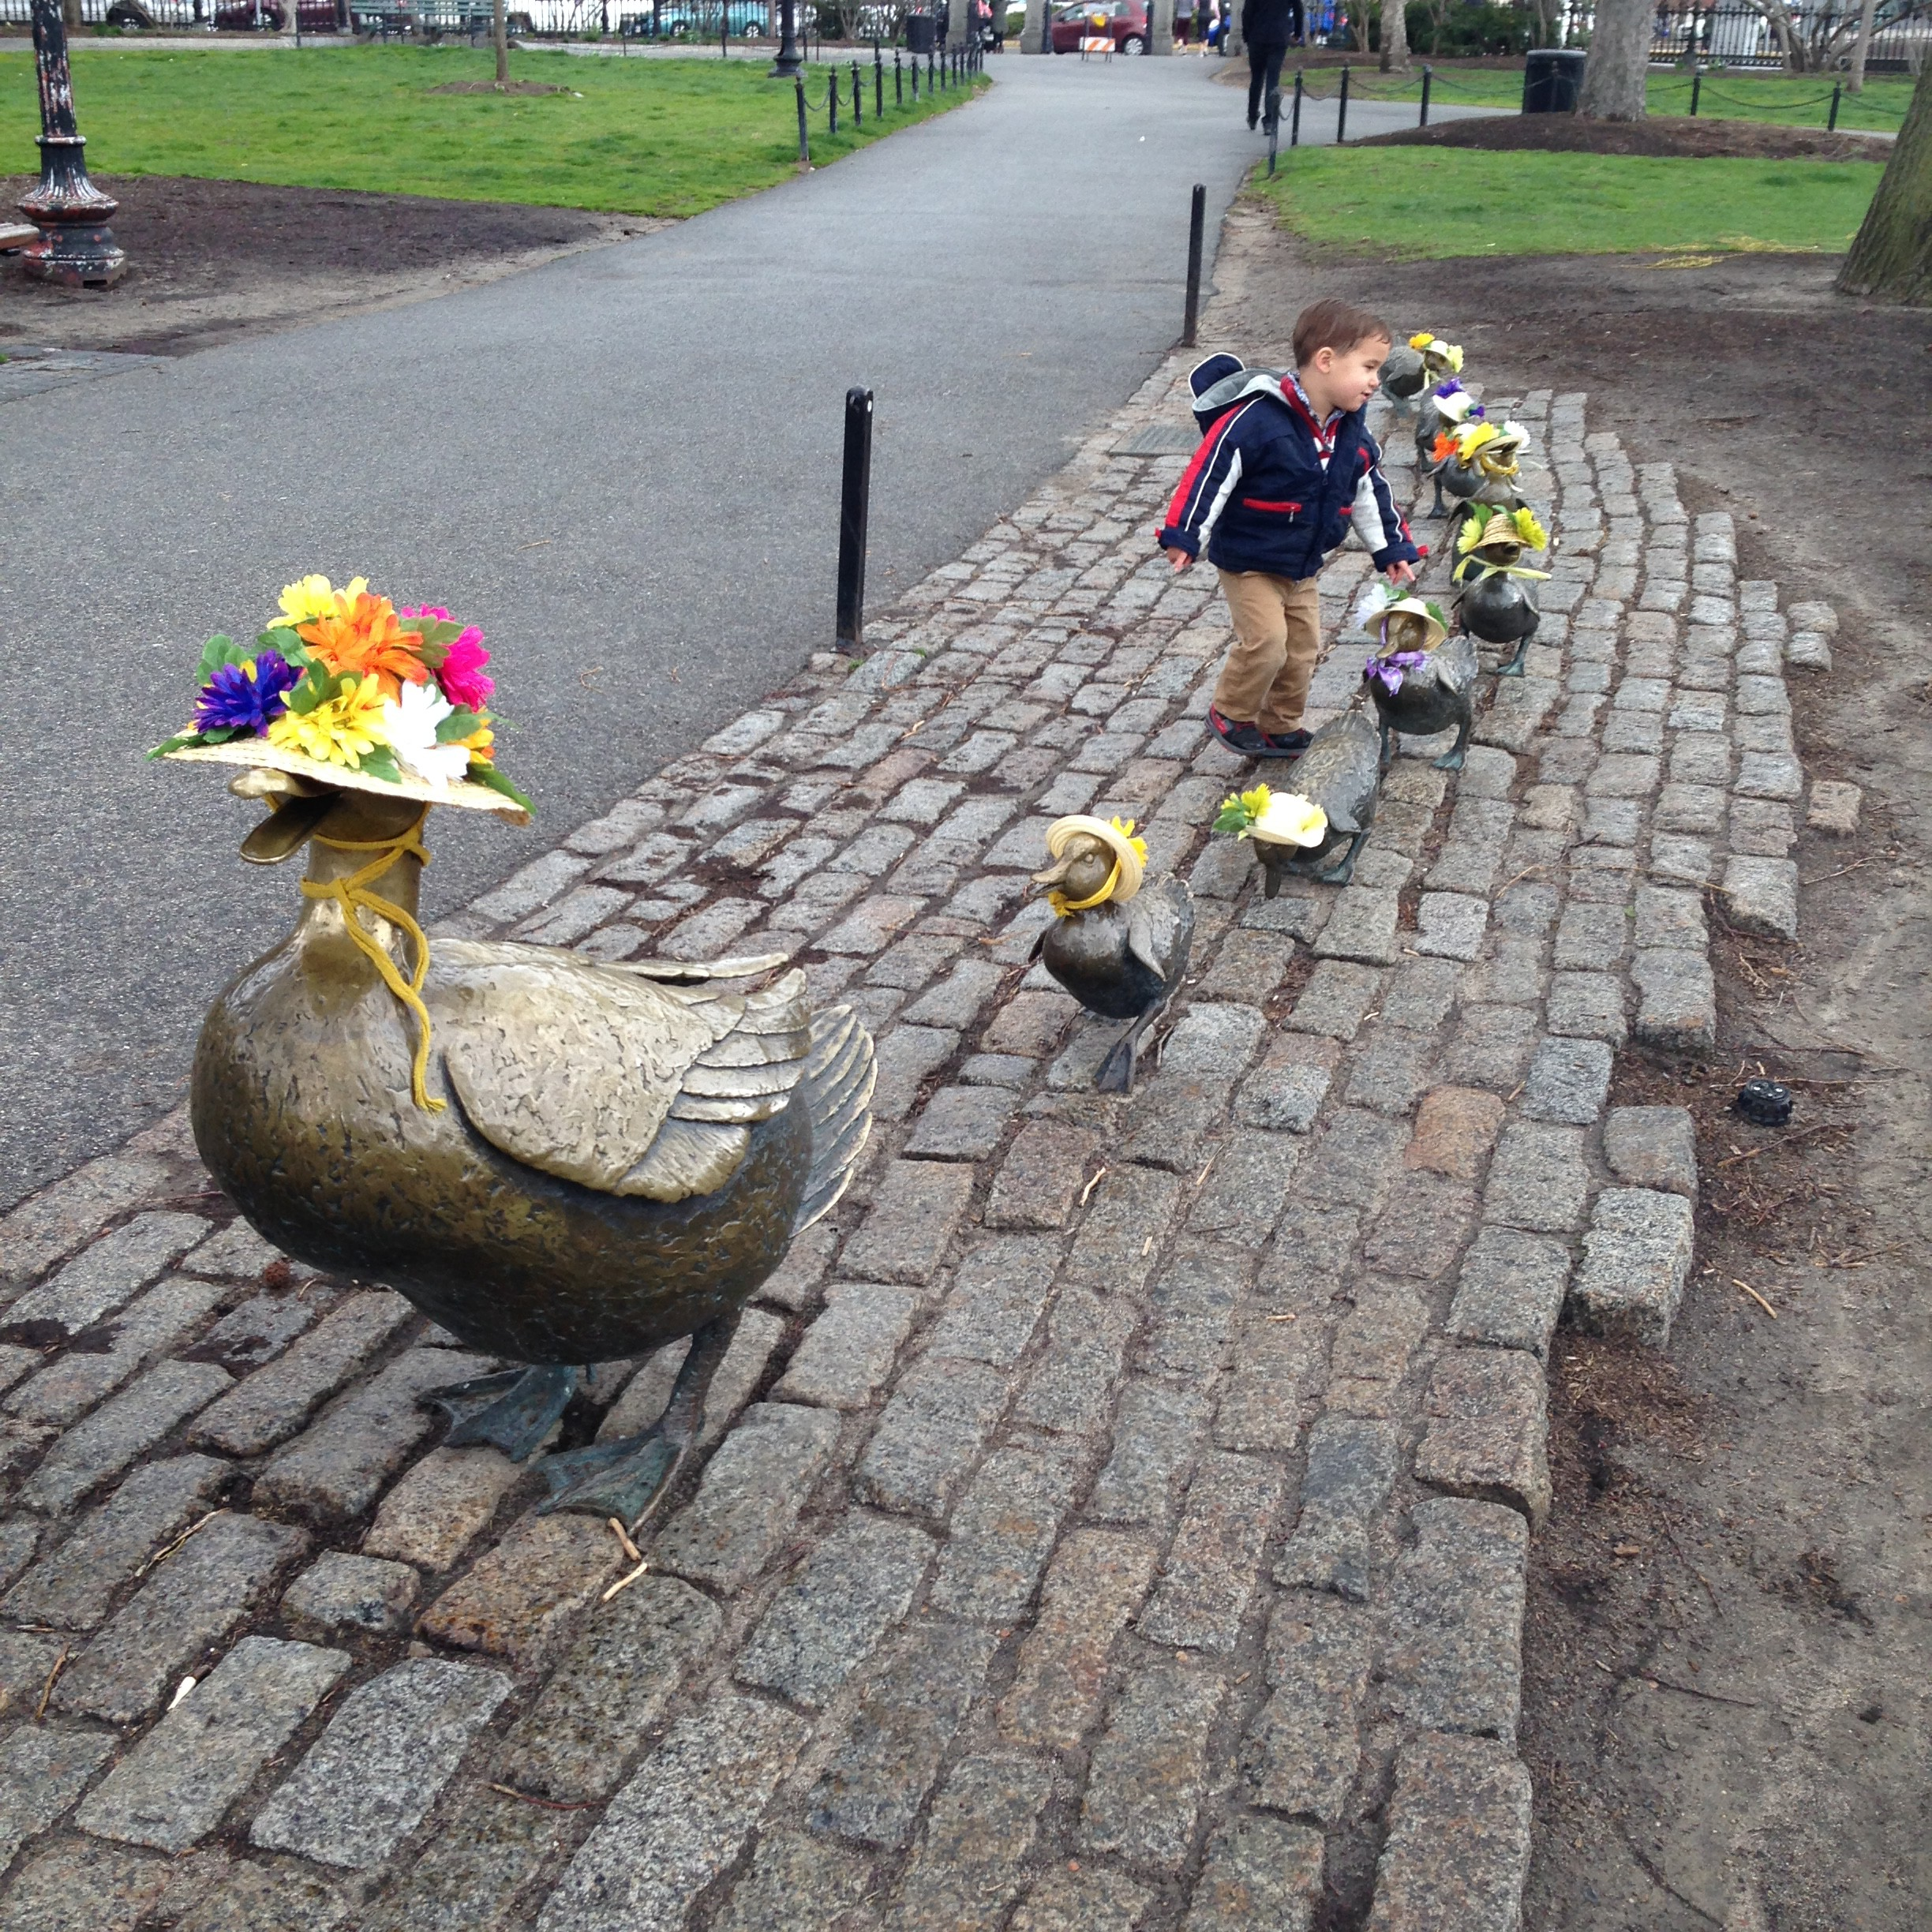 Boston's Make Way for the Ducklings statues